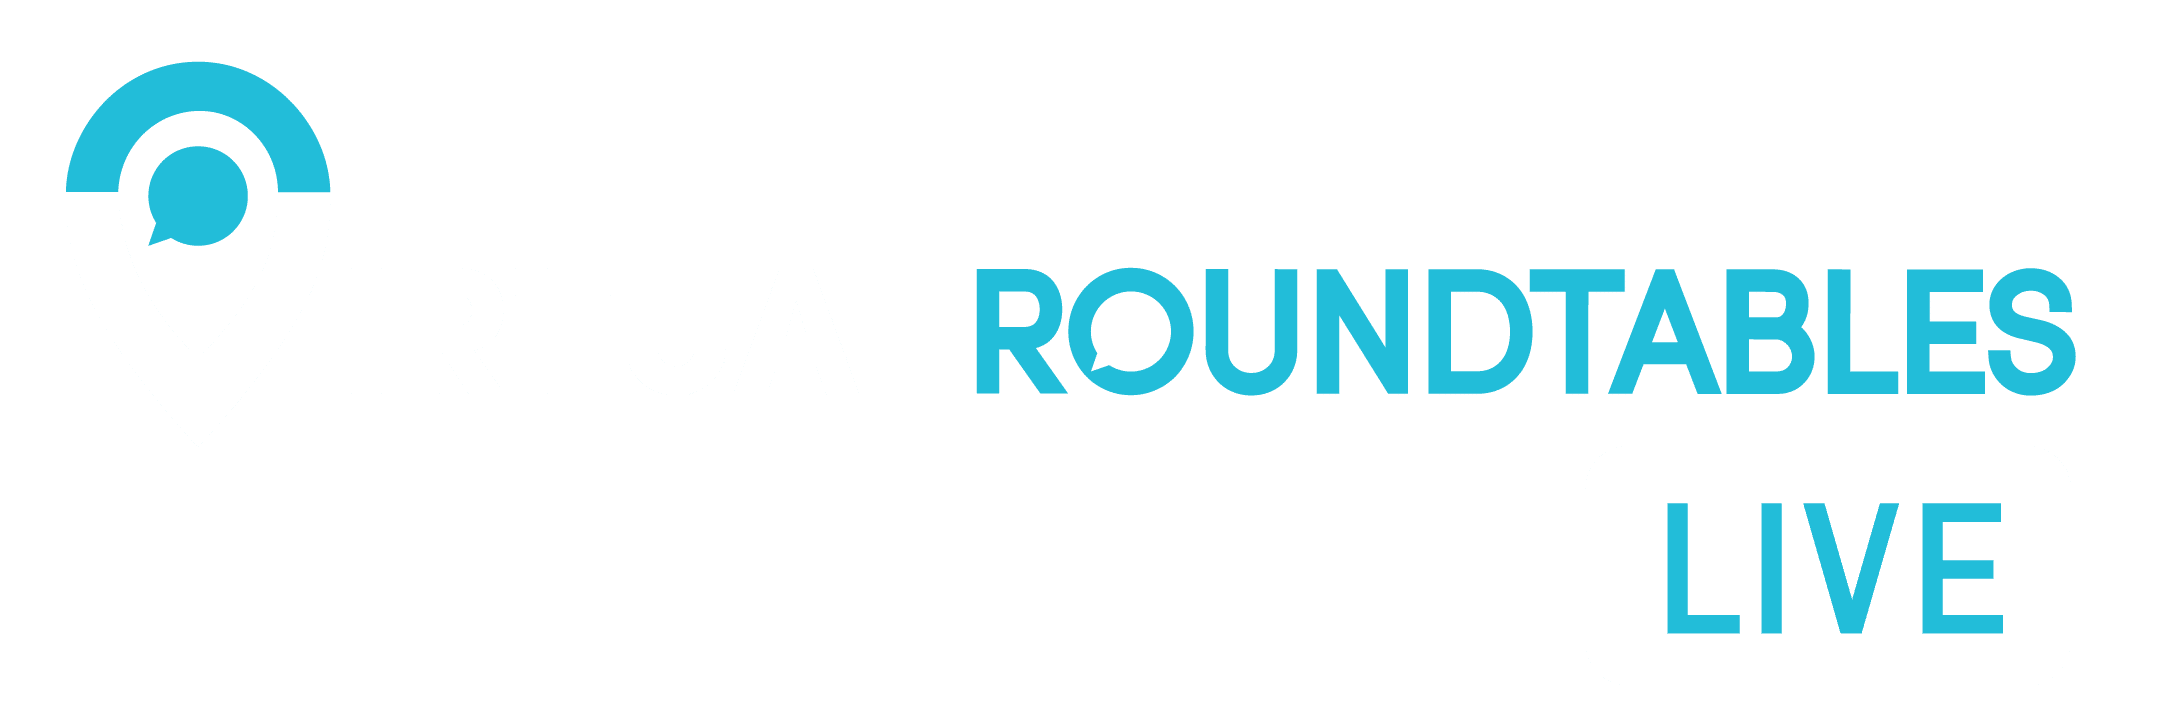 Virtual Roundtables Live